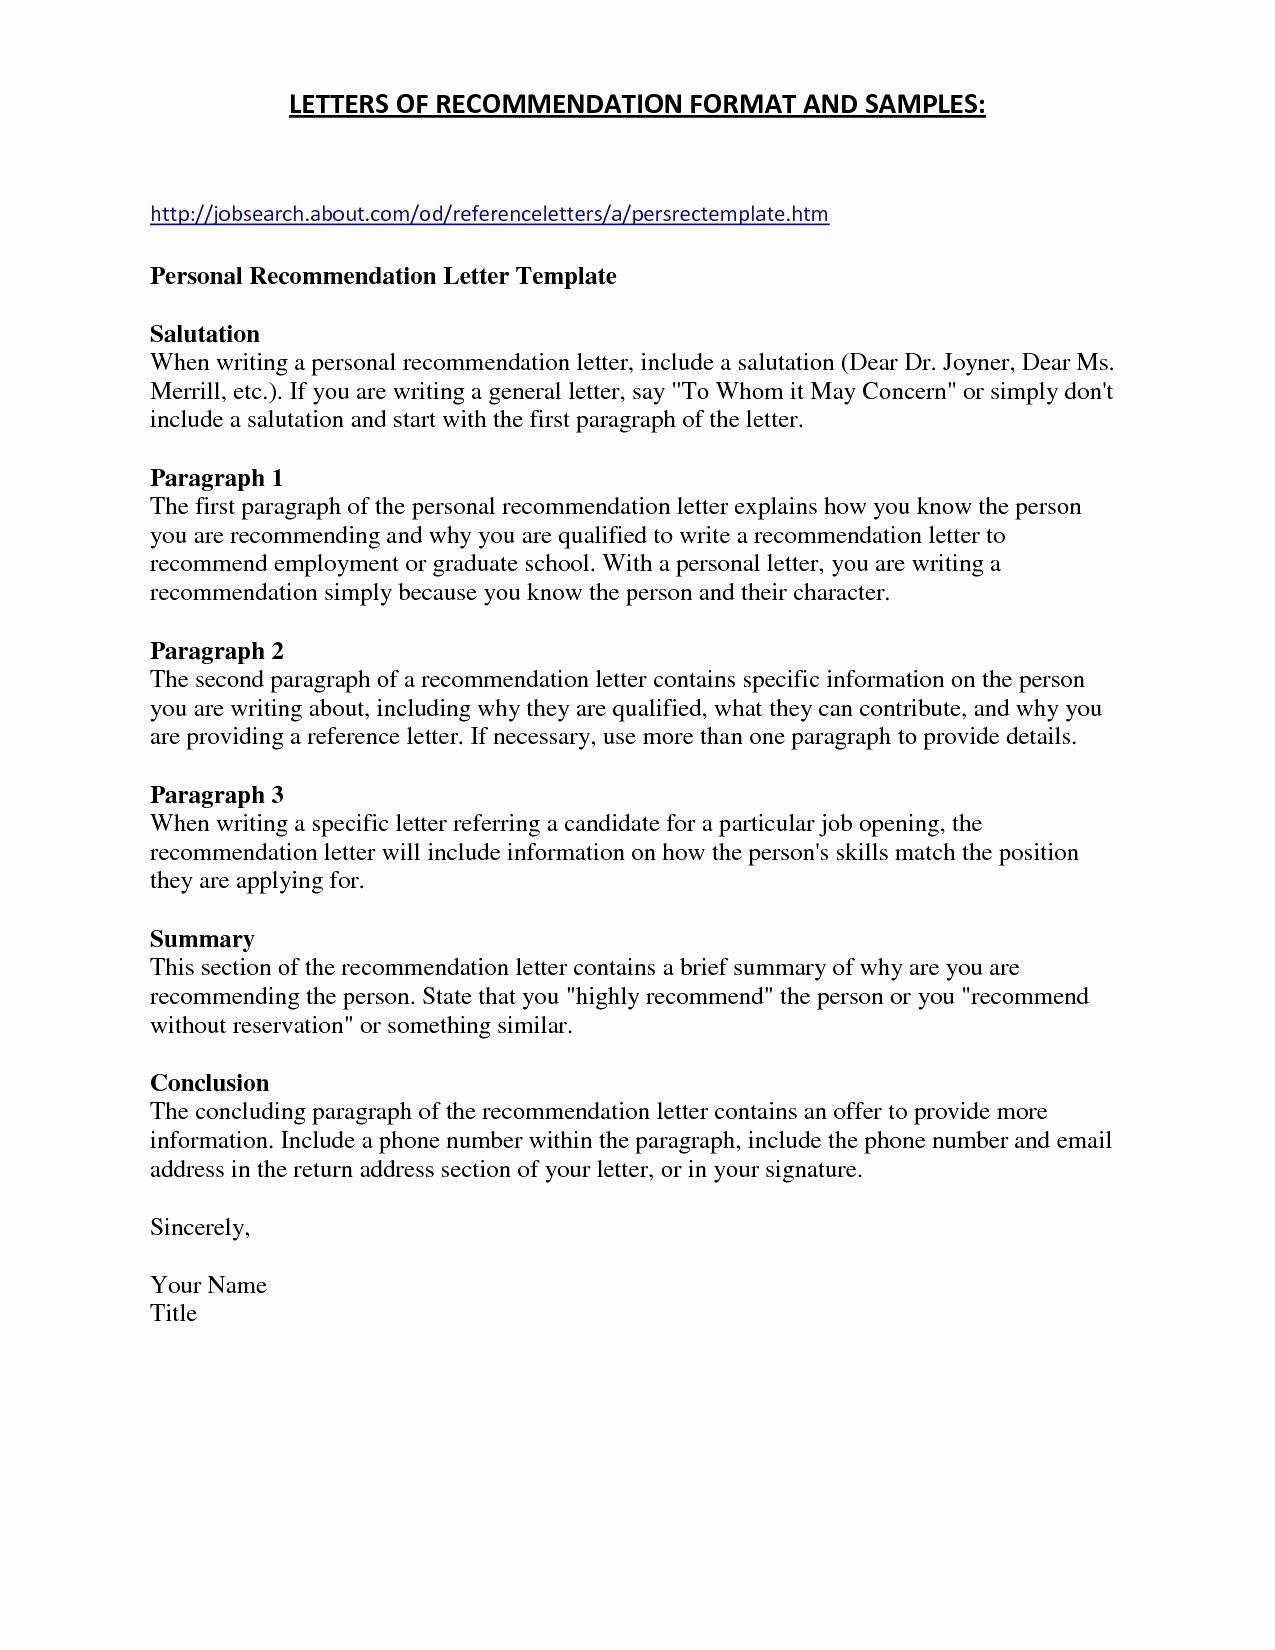 Artist Cover Letter Template - Cover Letter for Benefit Cosmetics